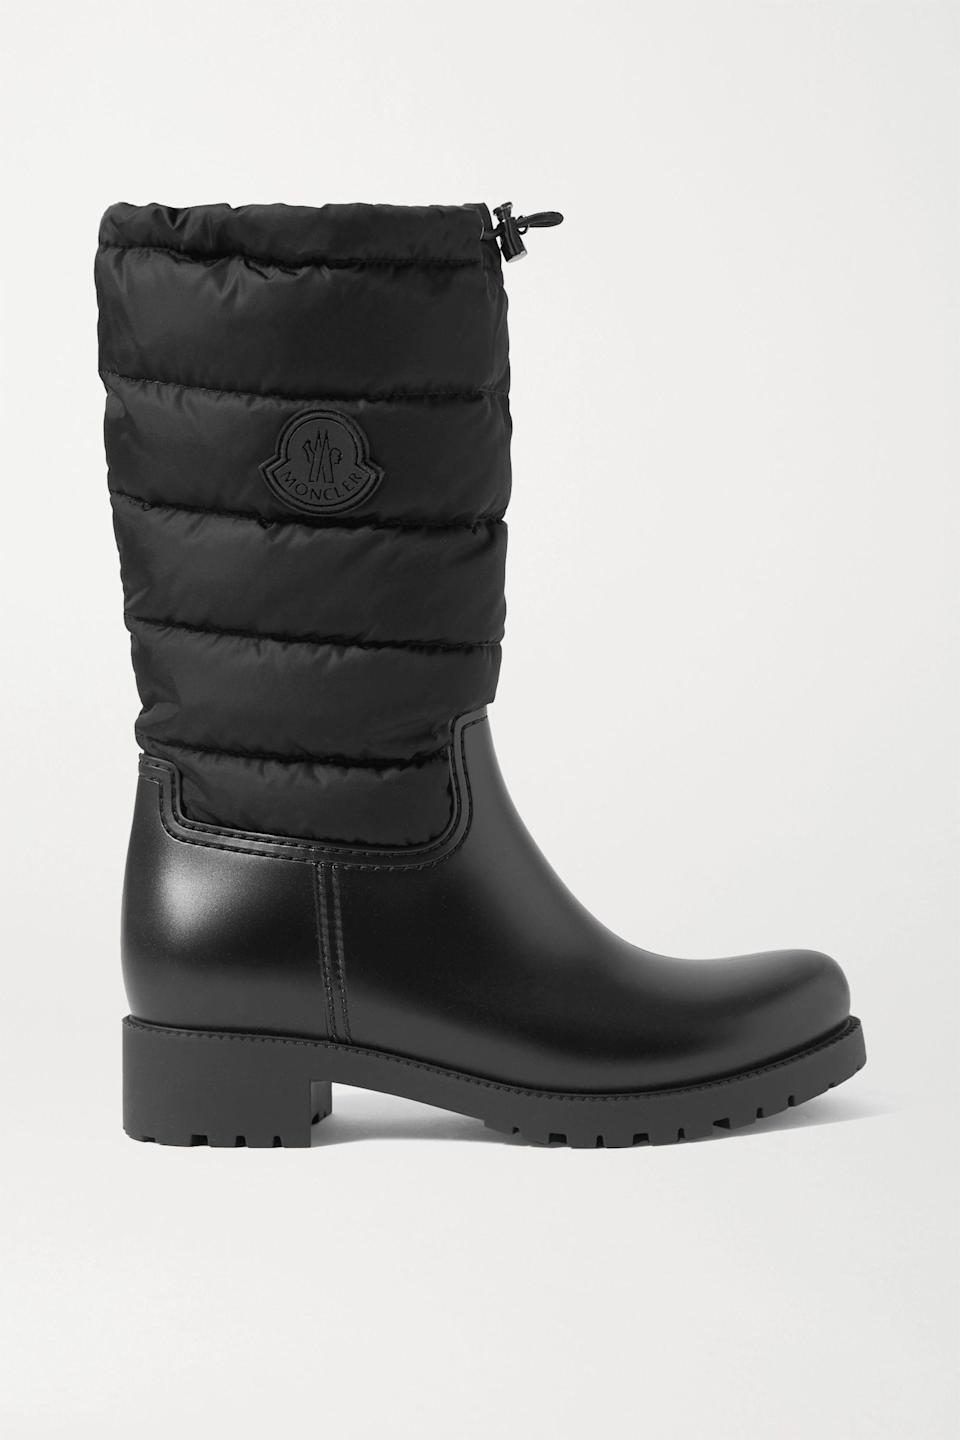 """<p><strong>Moncler</strong></p><p>net-a-porter.com</p><p><strong>$495.00</strong></p><p><a href=""""https://go.redirectingat.com?id=74968X1596630&url=https%3A%2F%2Fwww.net-a-porter.com%2Fen-us%2Fshop%2Fproduct%2Fmoncler%2Fginette-quilted-nylon-and-rubber-rain-boots%2F1257857&sref=https%3A%2F%2Fwww.marieclaire.com%2Ffashion%2Fg3388%2Fsnow-boots-for-women%2F"""" rel=""""nofollow noopener"""" target=""""_blank"""" data-ylk=""""slk:SHOP IT"""" class=""""link rapid-noclick-resp"""">SHOP IT</a></p><p>The scenario: you find a pair of winter boots you love and everything fits perfectly, except you can still feel the wind coming in through the tops of your boots. The solution: Slip into a pair of Moncler's Ginette boots. They have toggles on top of the boot to cinch in the quilted nylon for heat retention while the lug soles provide traction as you make your way through the snow.<br></p>"""